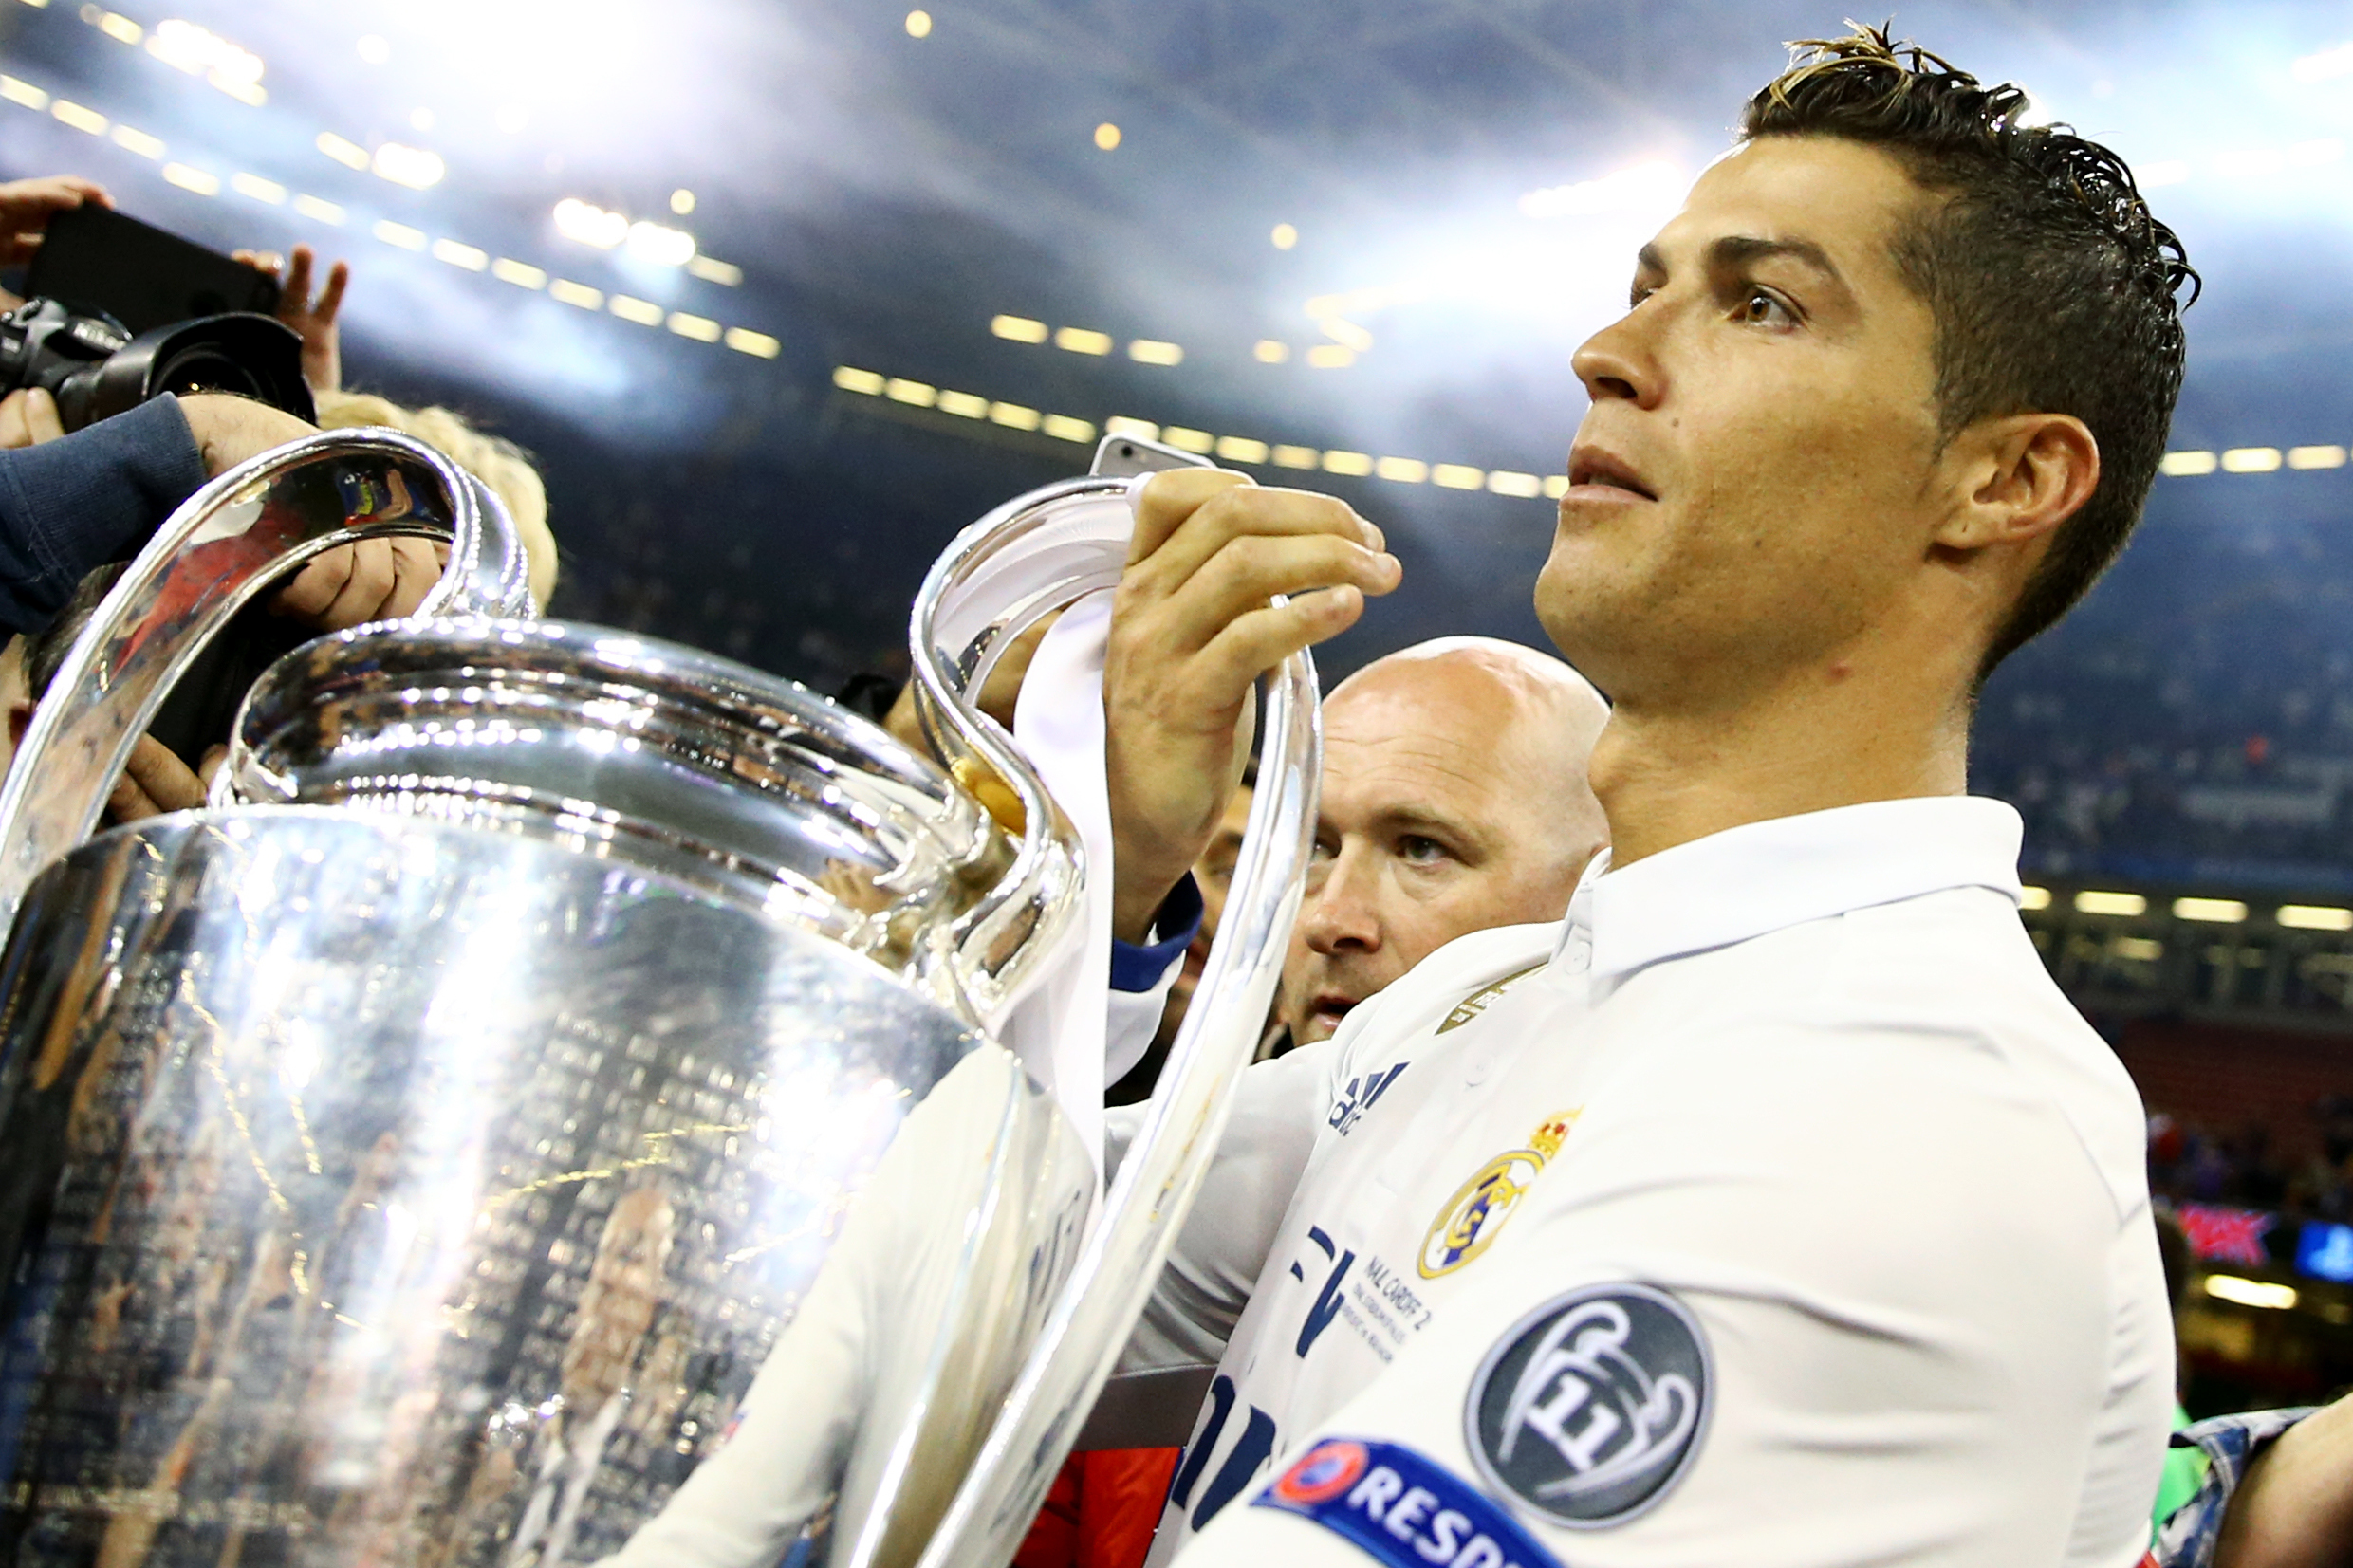 REAL MADRID - Ronaldo wants Blancos exit